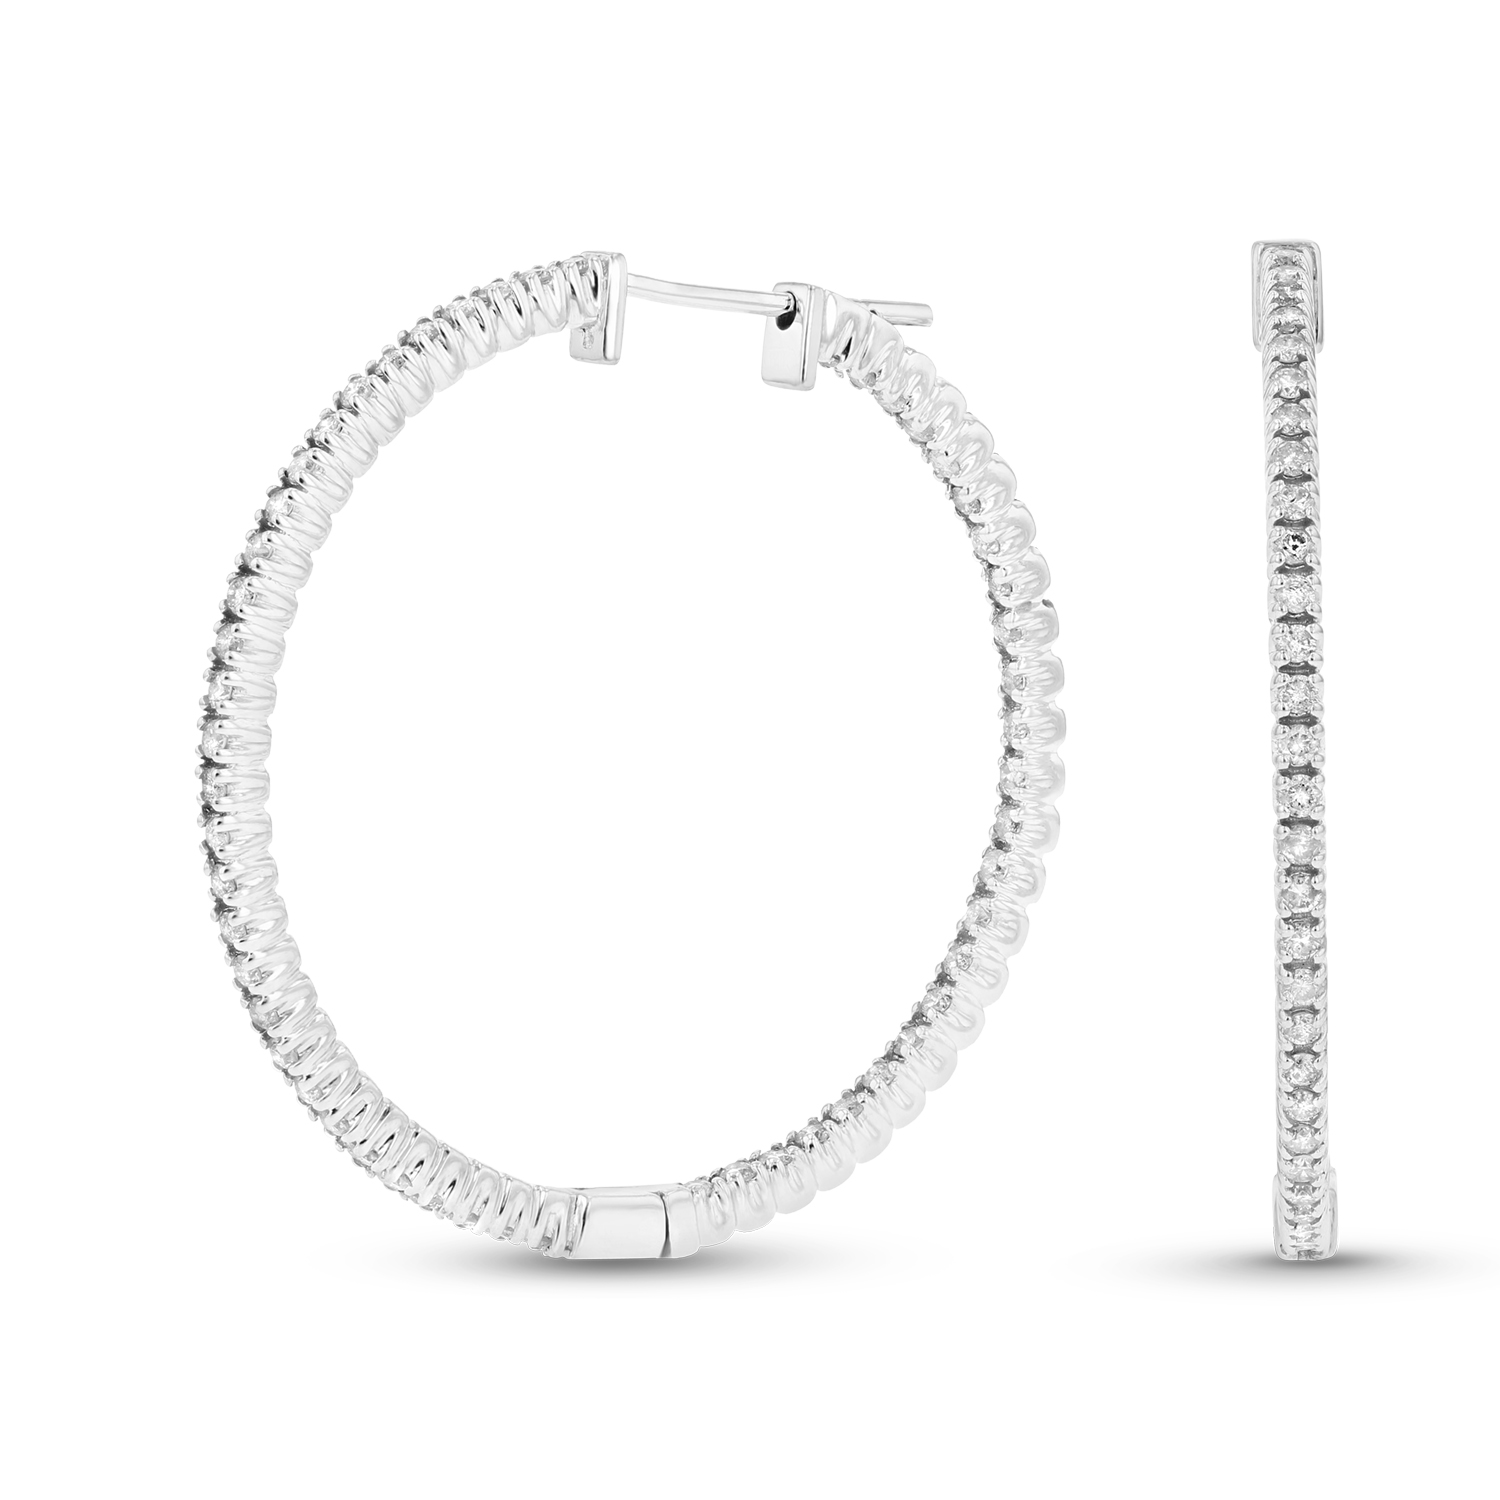 View 14k Gold Hoop Earrings with 1.10cttw of Diamonds. 1 1/4 Inches in Diameter